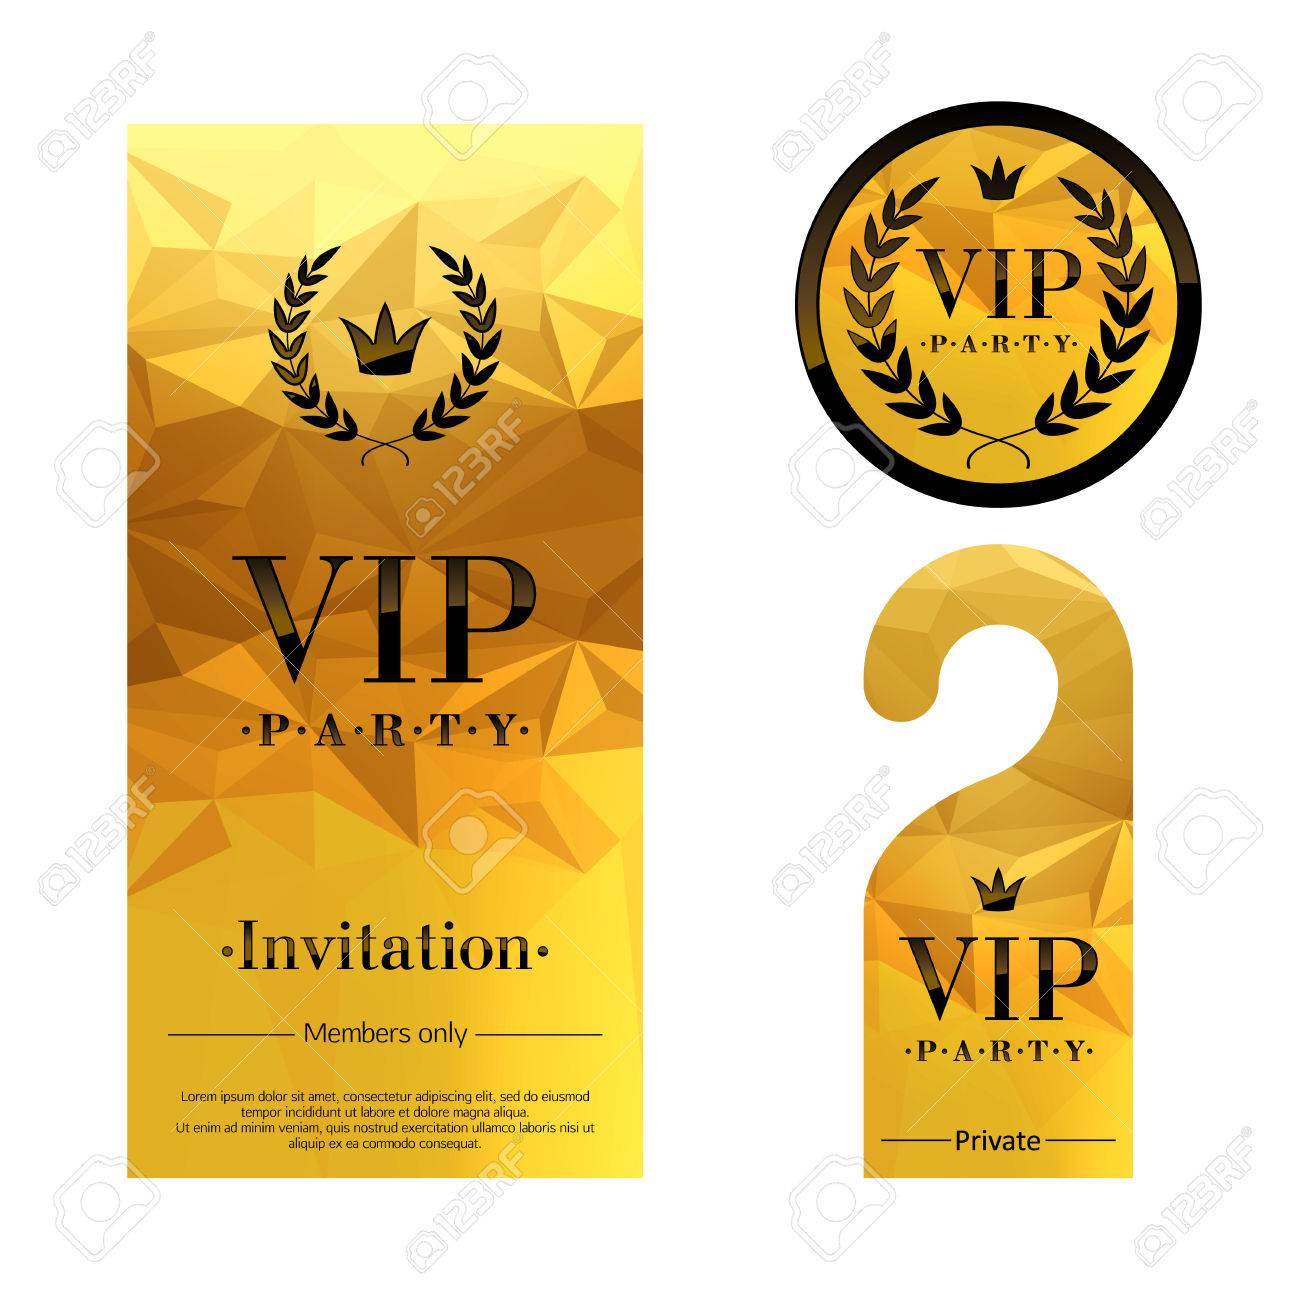 Vip party premium invitation card warning hanger and round label vector vip party premium invitation card warning hanger and round label badge golden faceted mosaic design template set laurel wreath and crown stopboris Gallery